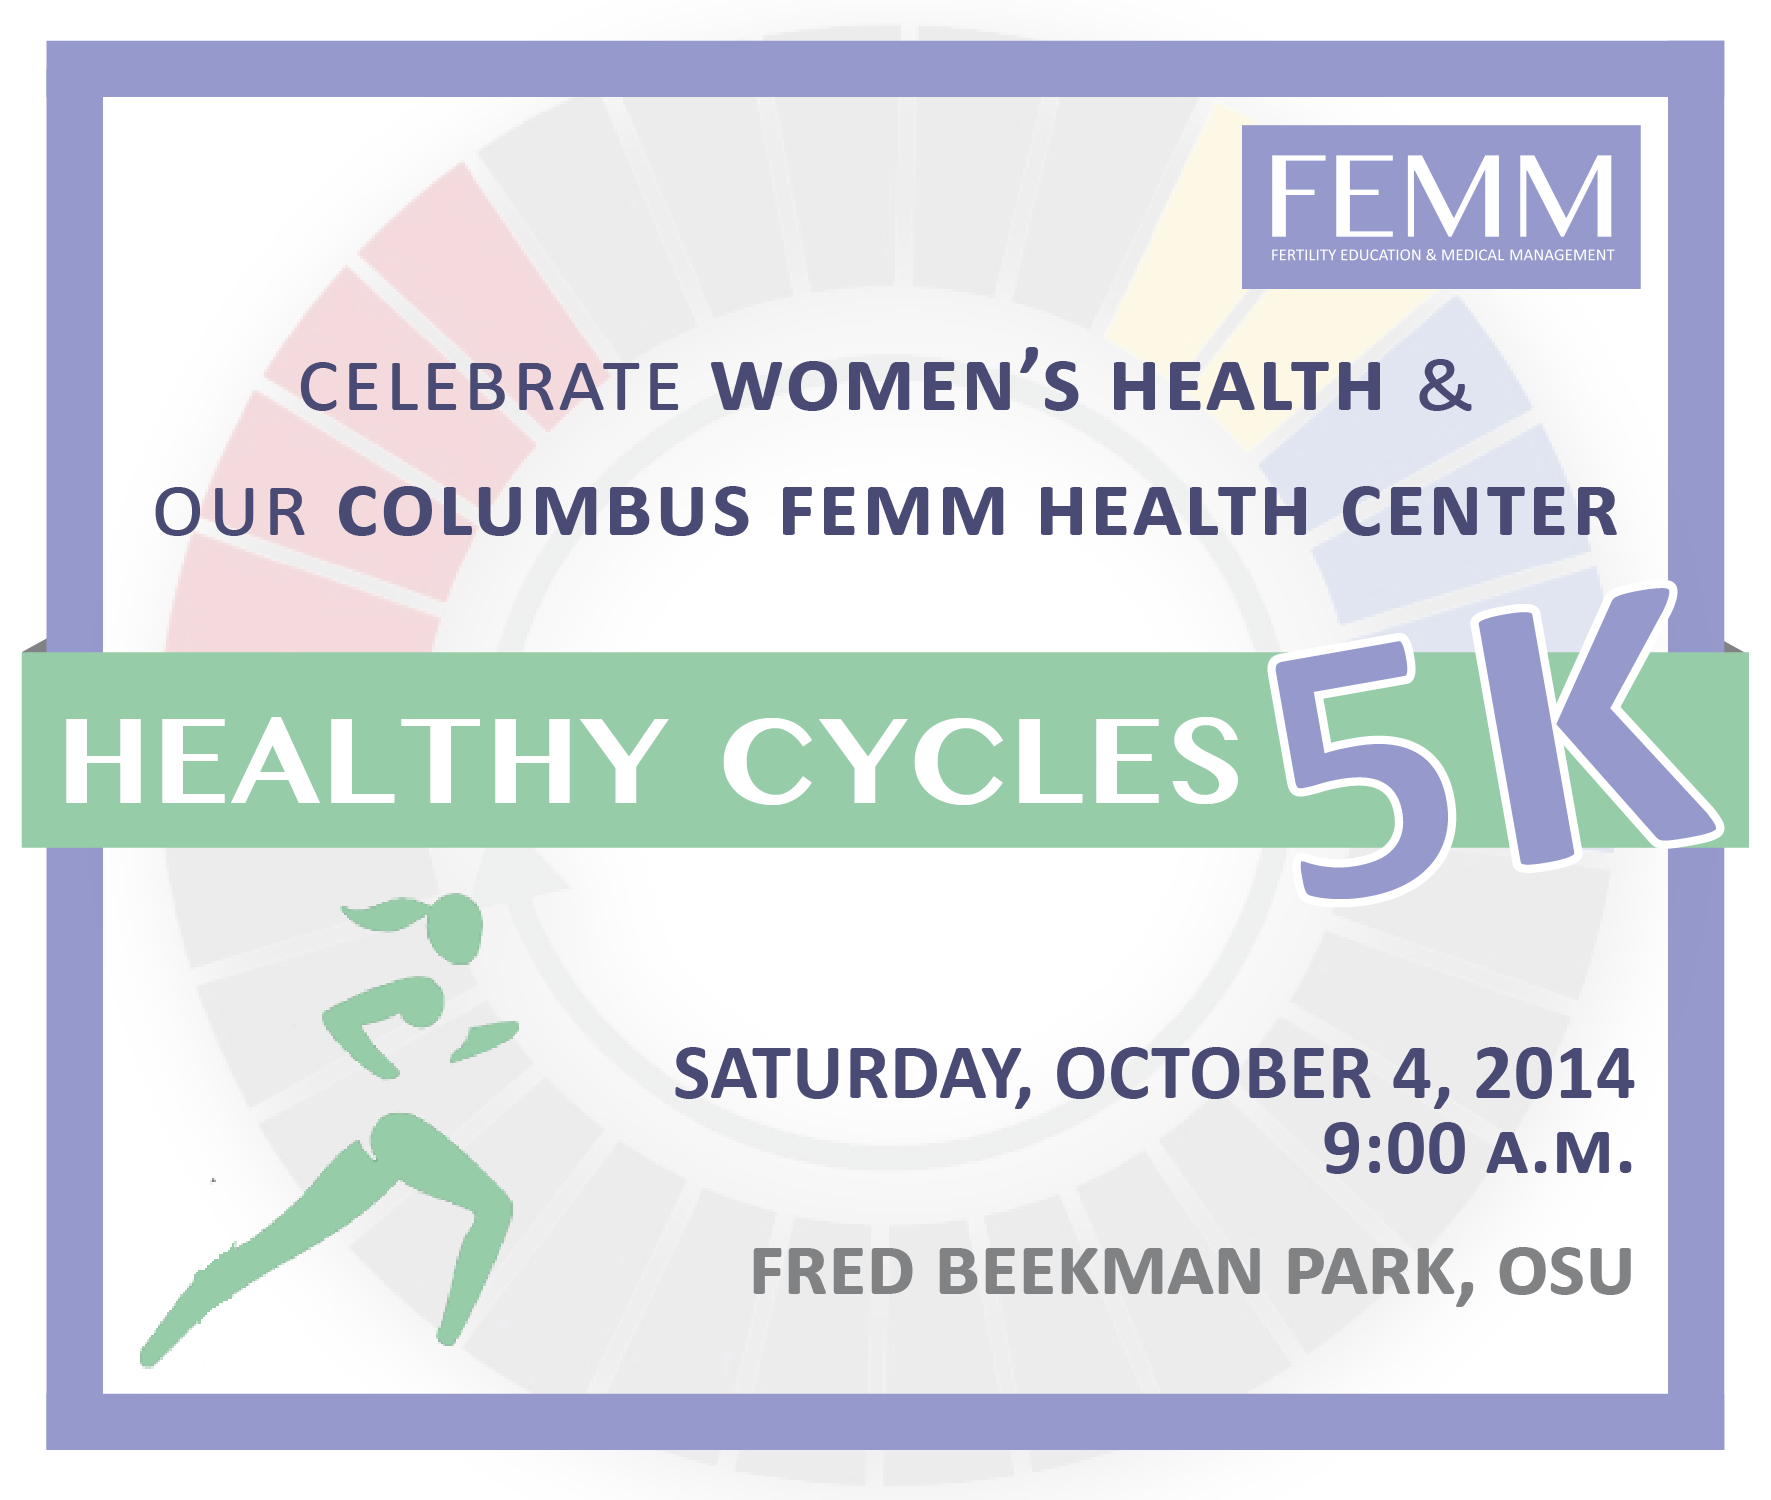 Celebrate women's health & our Columbus FEMM Health Center with the Healthy Cycles 5K, Sat., Oct. 4, 2014, at 9:00 a.m, at OSU's Fred Beekman Park.